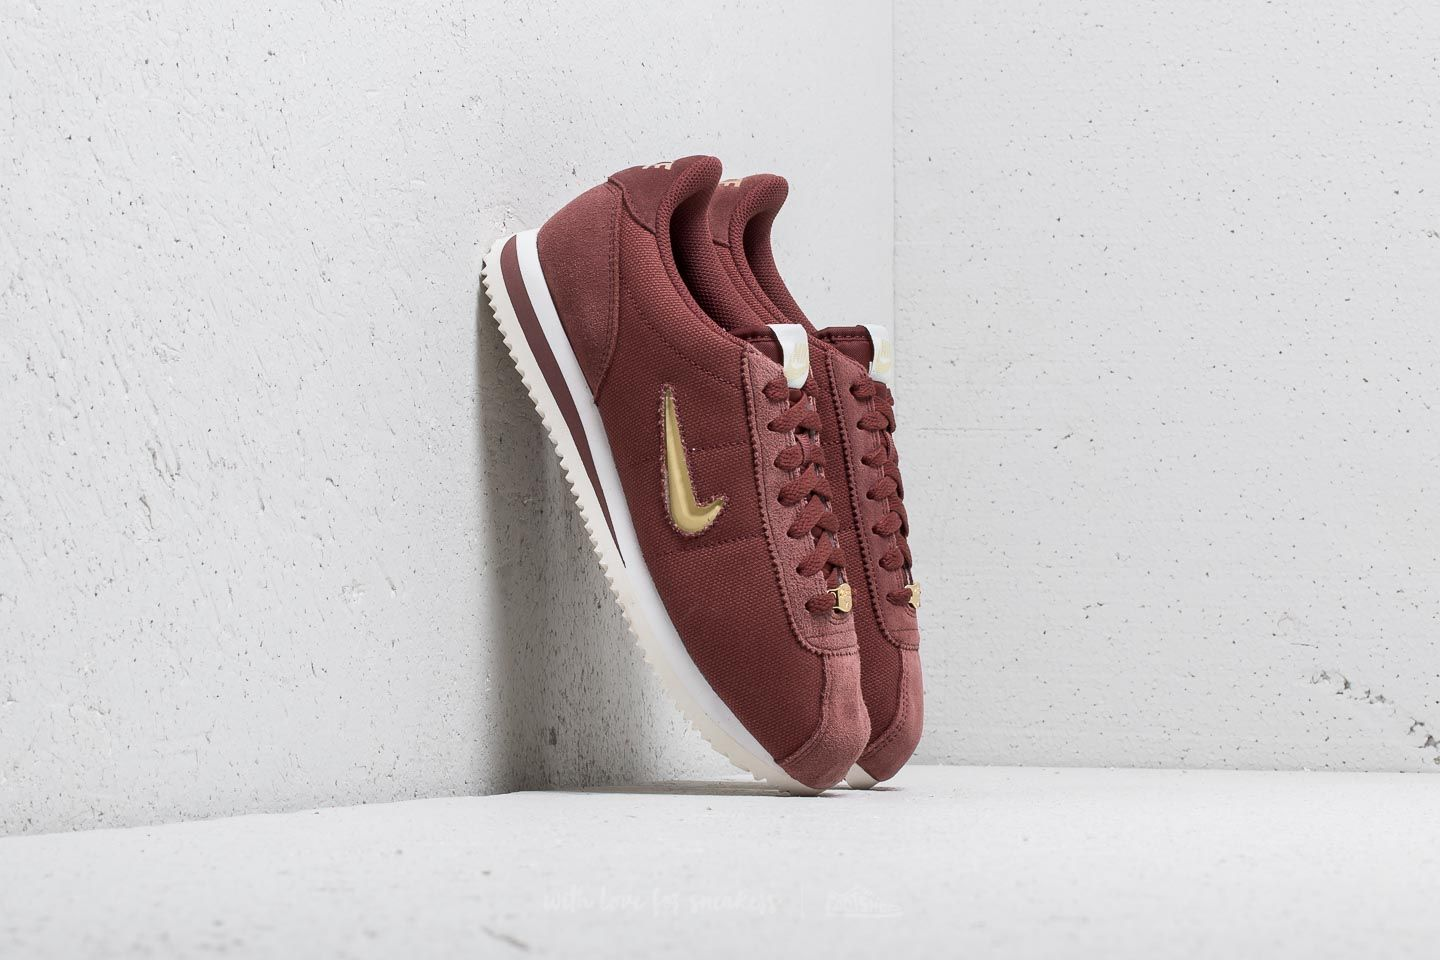 Nike Cortez Basic Jewel ´18 WMNS Red Sepia/ Metalic Gold Star